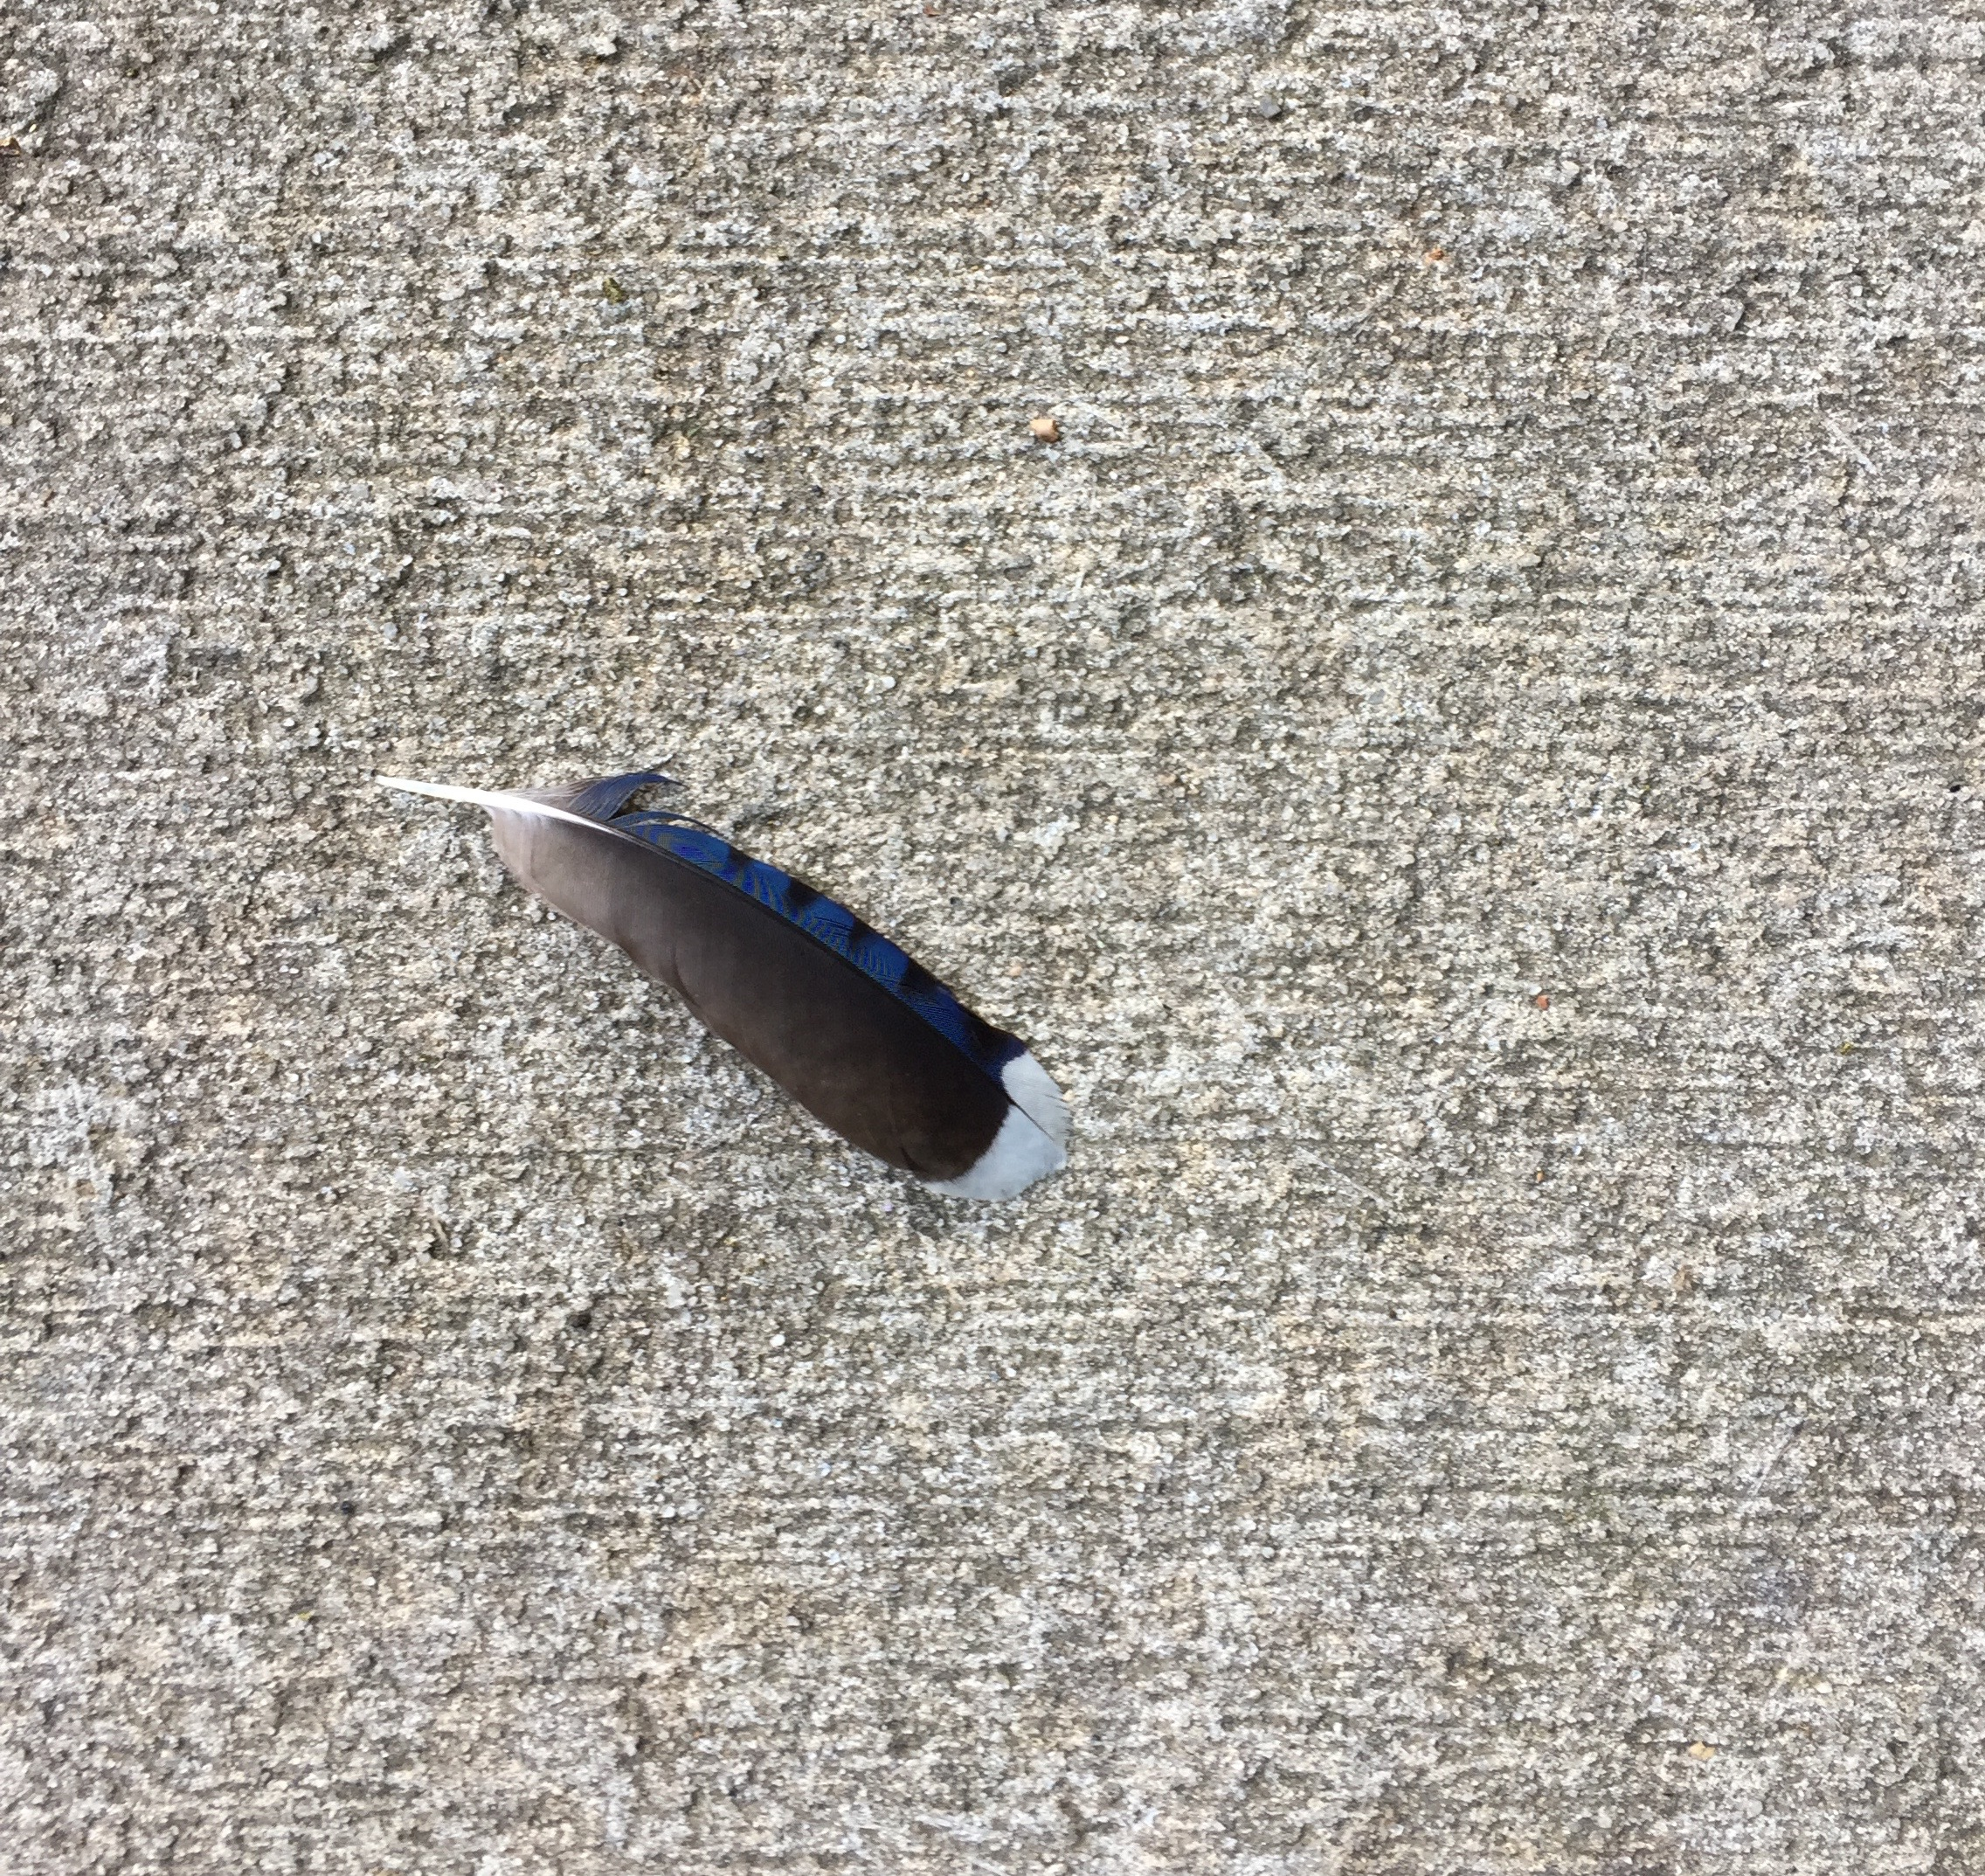 A bird's feather gracing the concrete walkway in a local park.